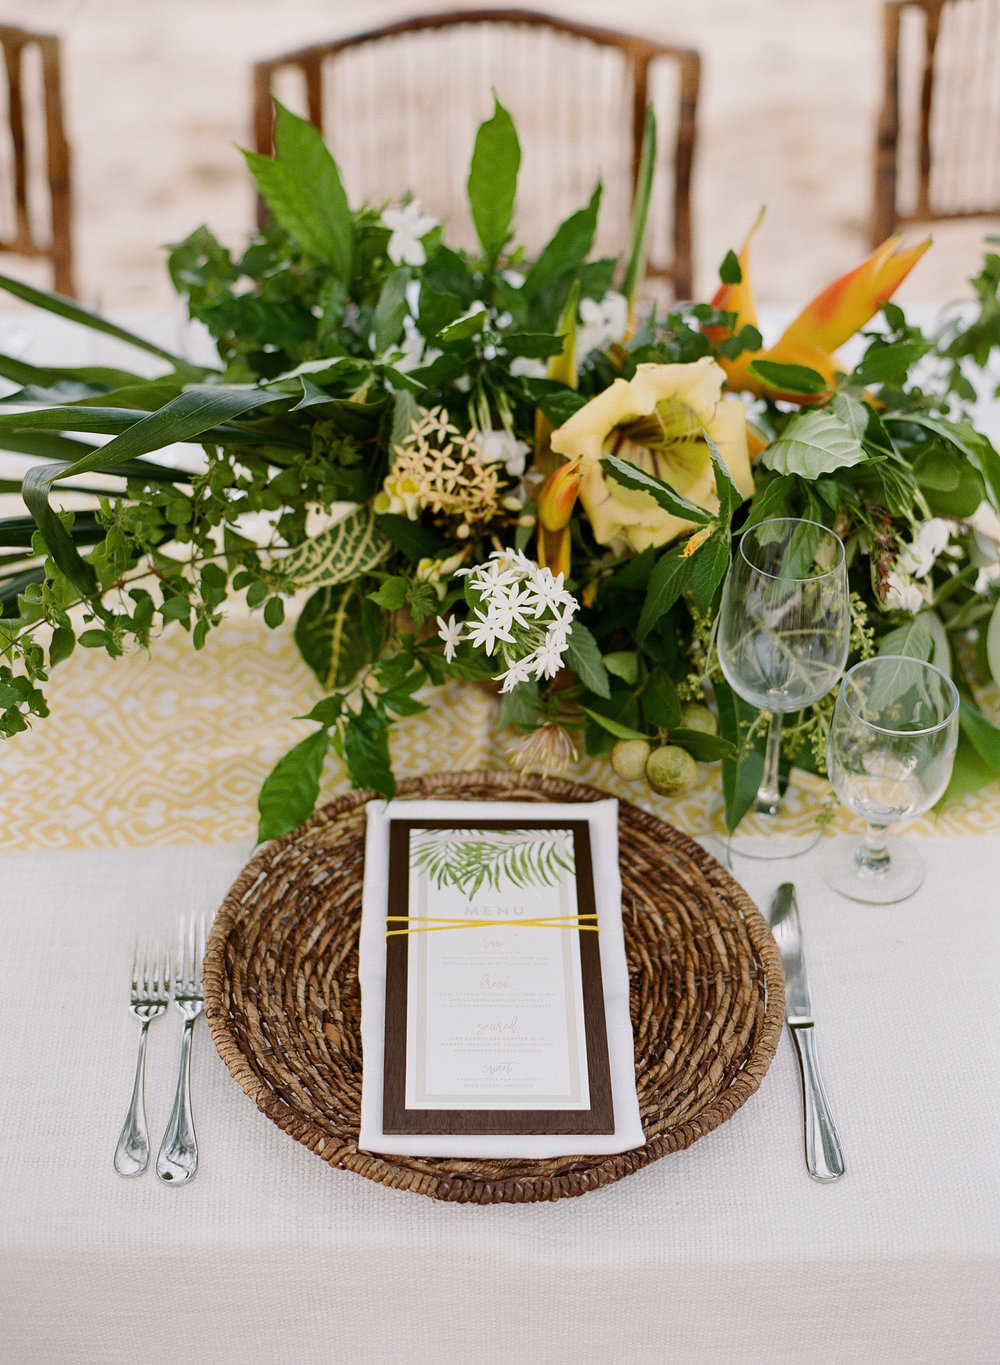 A wicker placemat and tropical flowers for an intimate beach wedding reception in Montego Bay, Jamaica; Sylvie Gil Photography